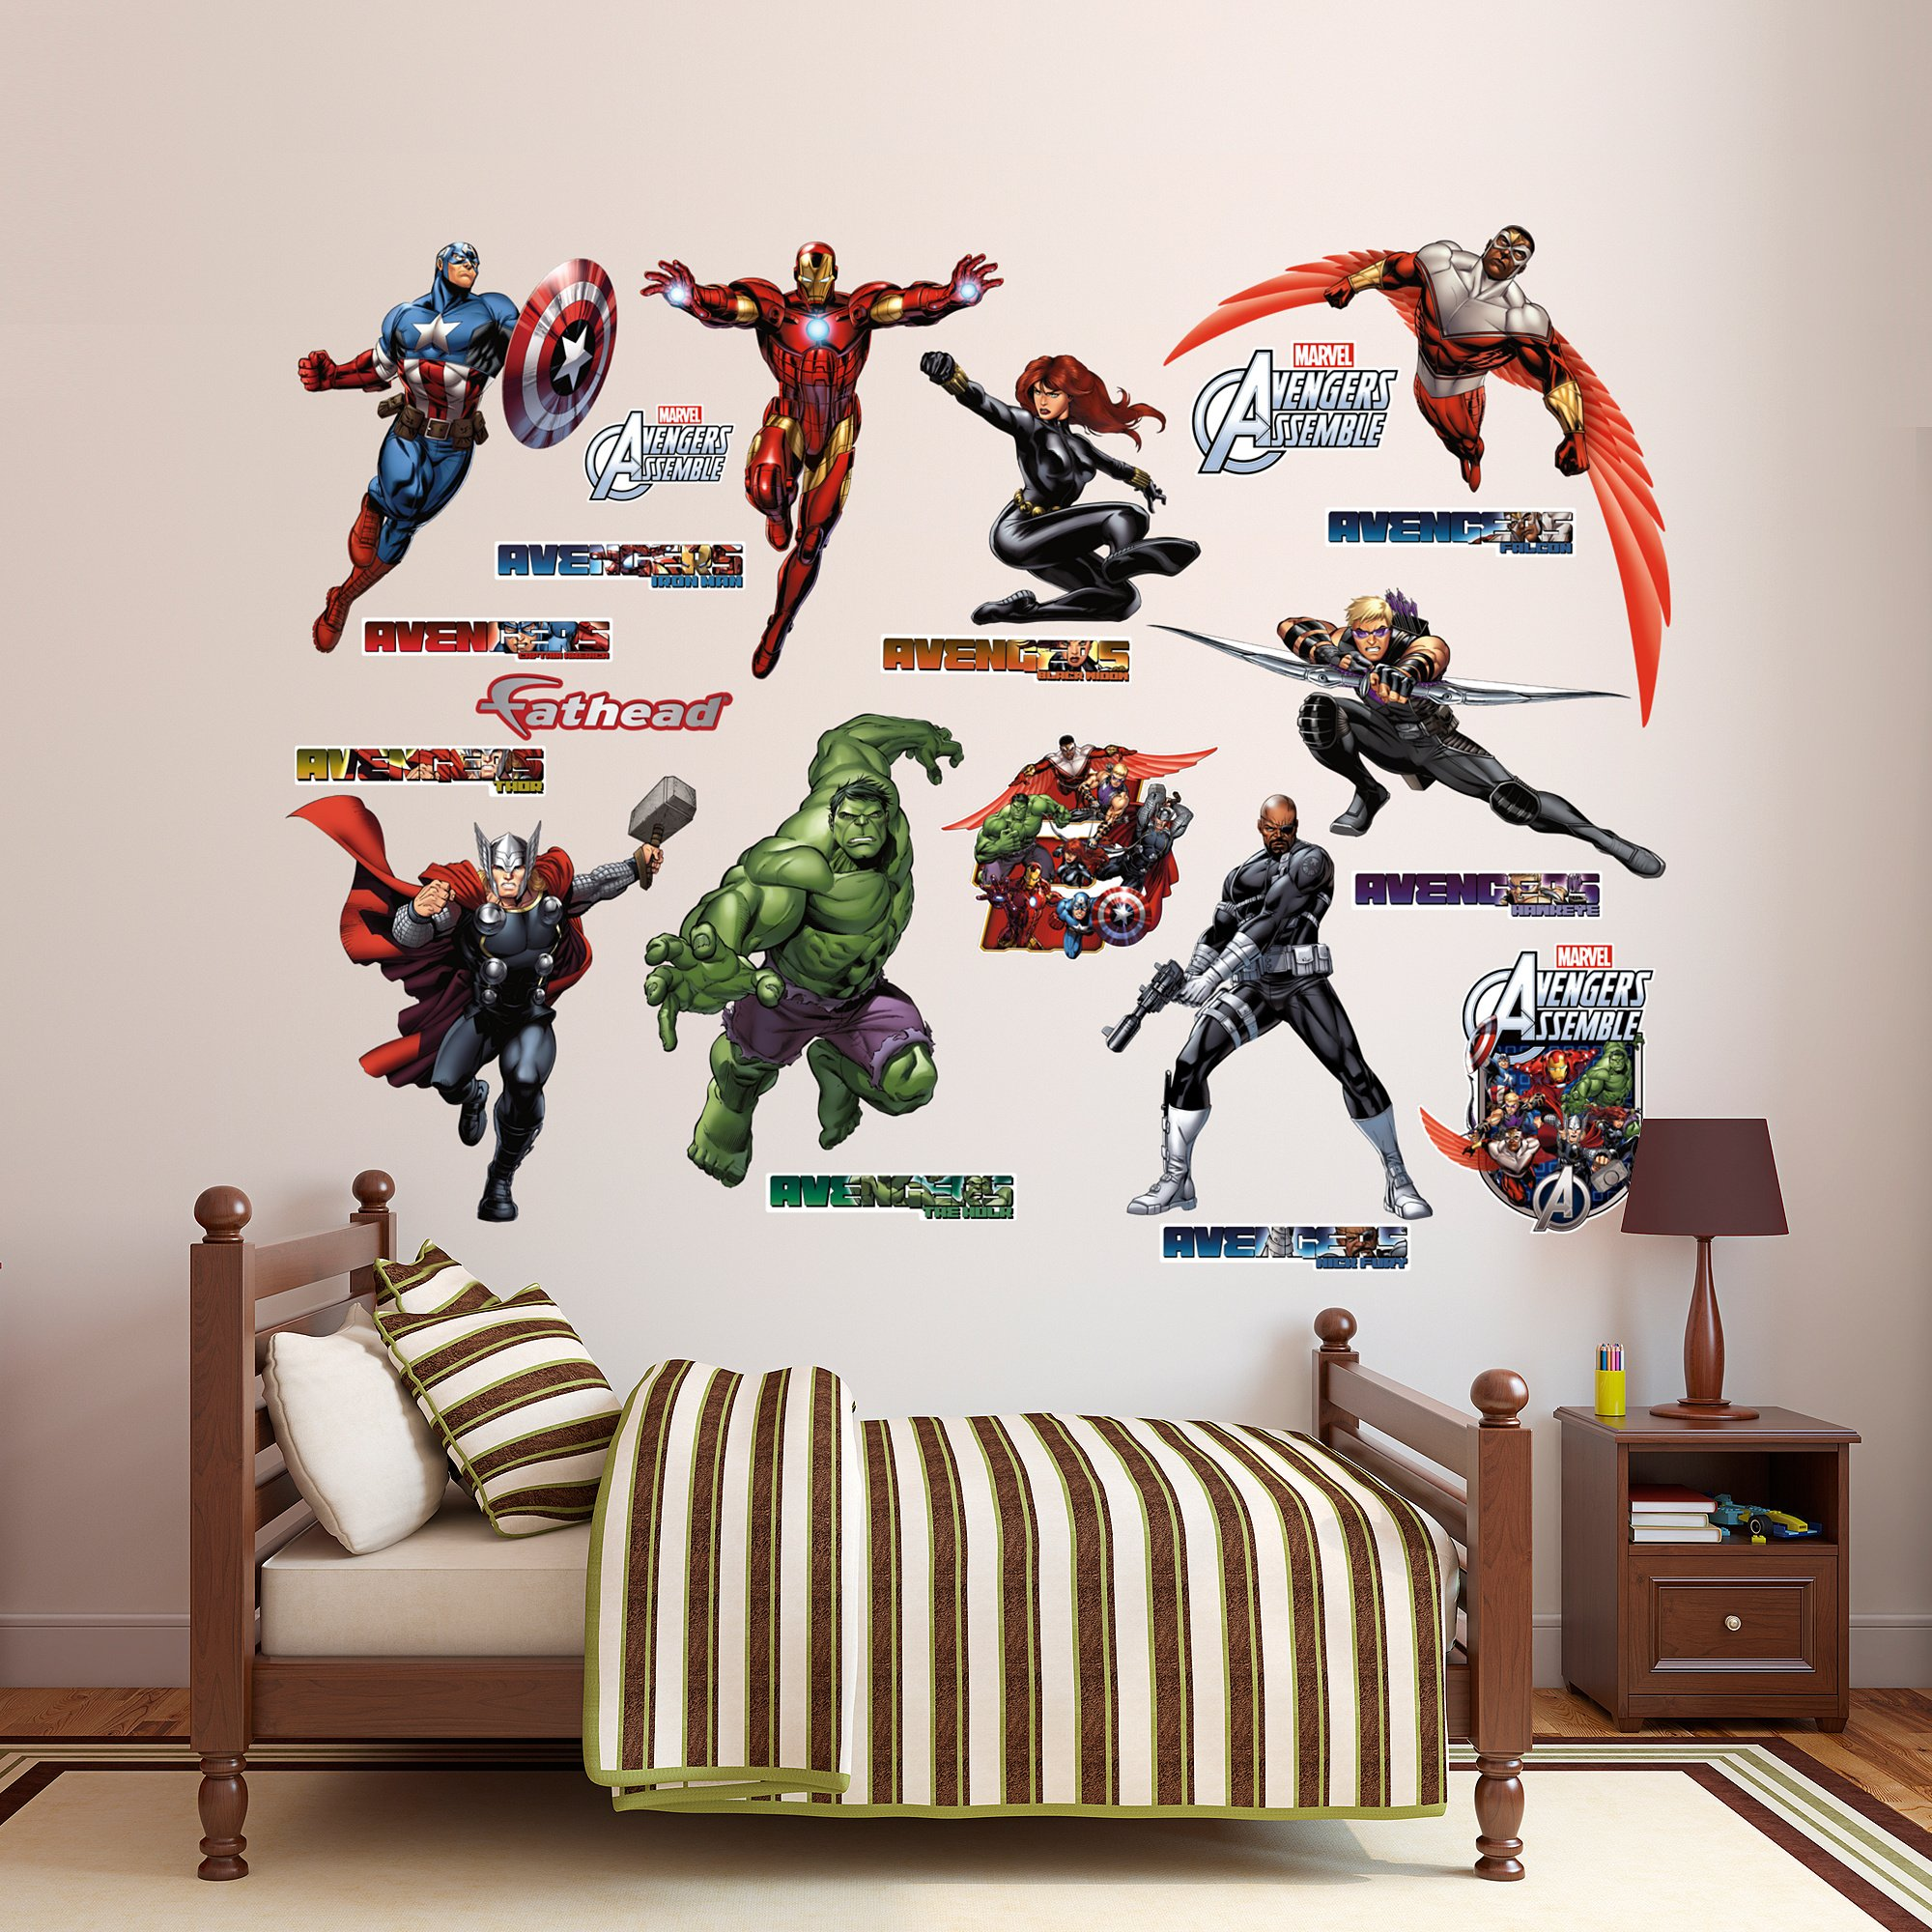 FATHEAD Avengers Assemble Collection Real Big Wall Decal by FATHEAD (Image #1)